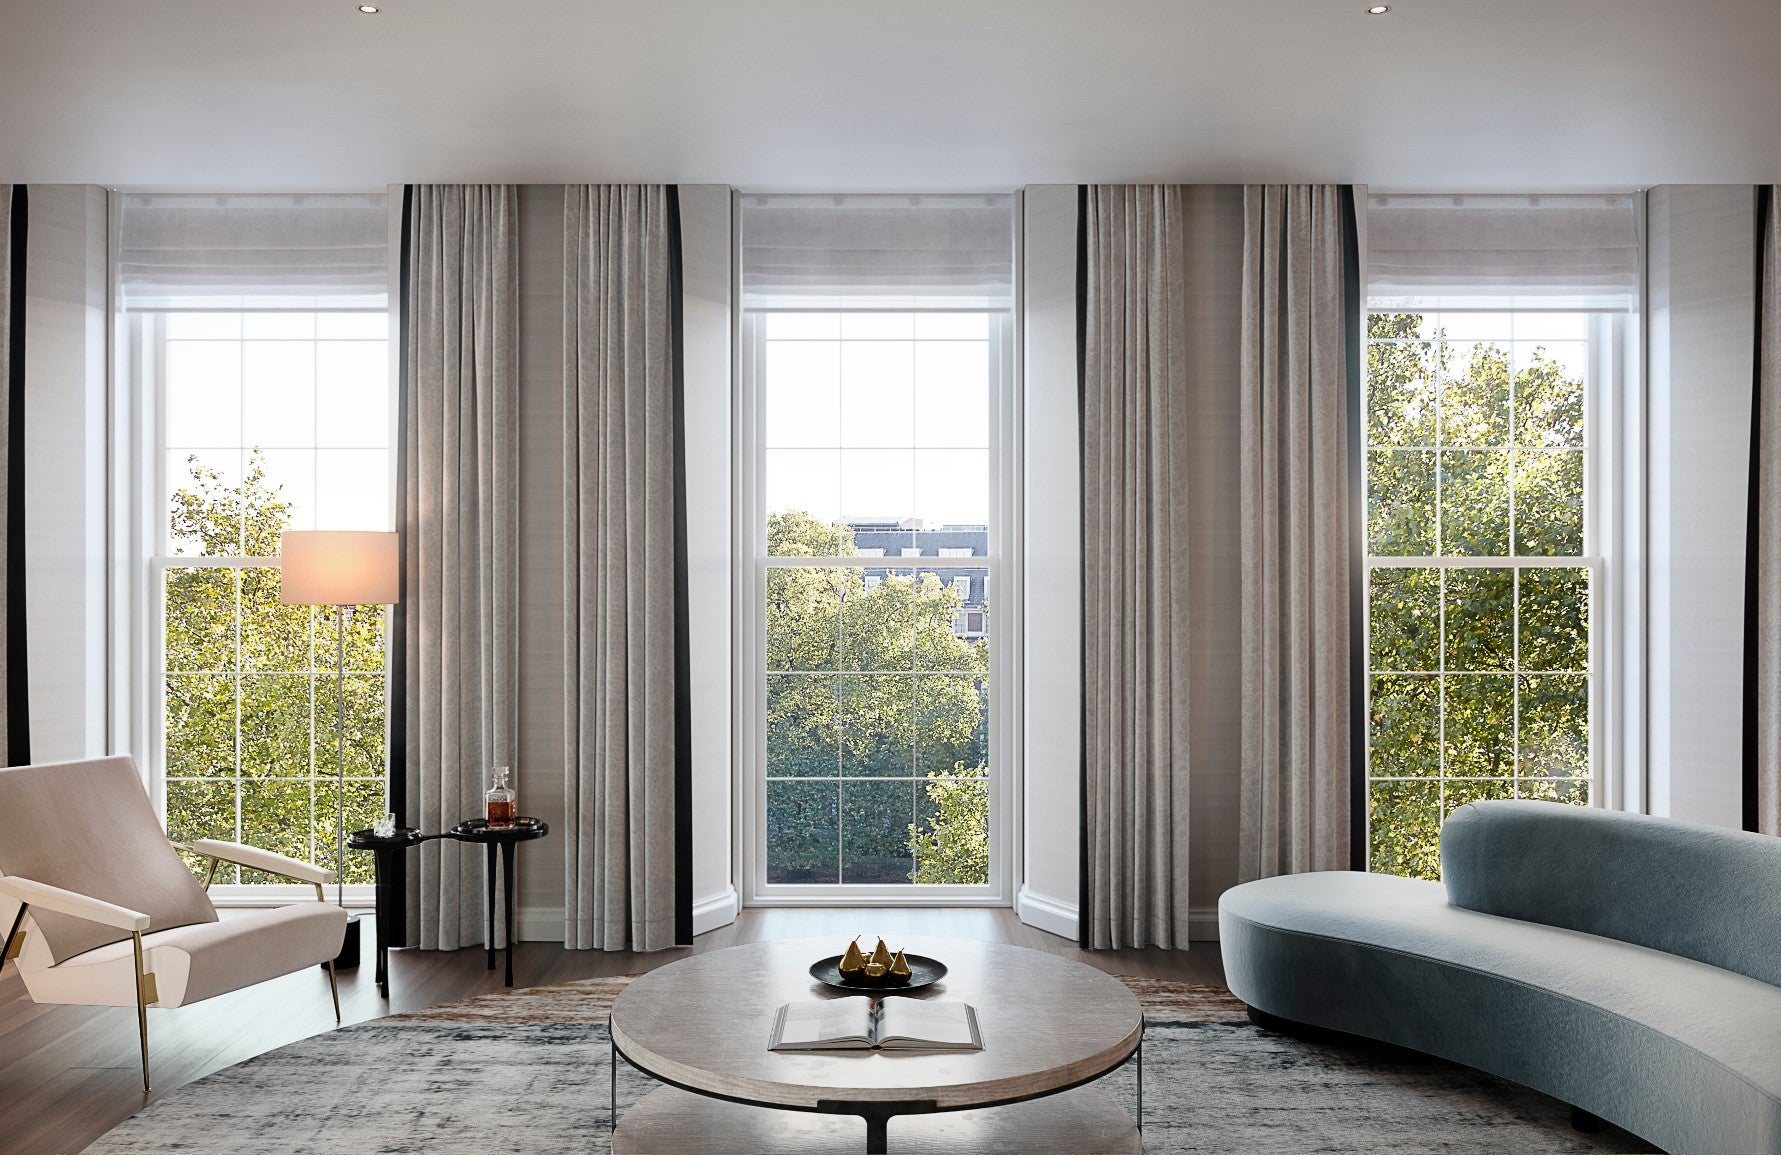 How To Master London Interior Design – 20 Grosvenor Square – Neutral Living Room – Read on the LuxDeco.com Style Guide